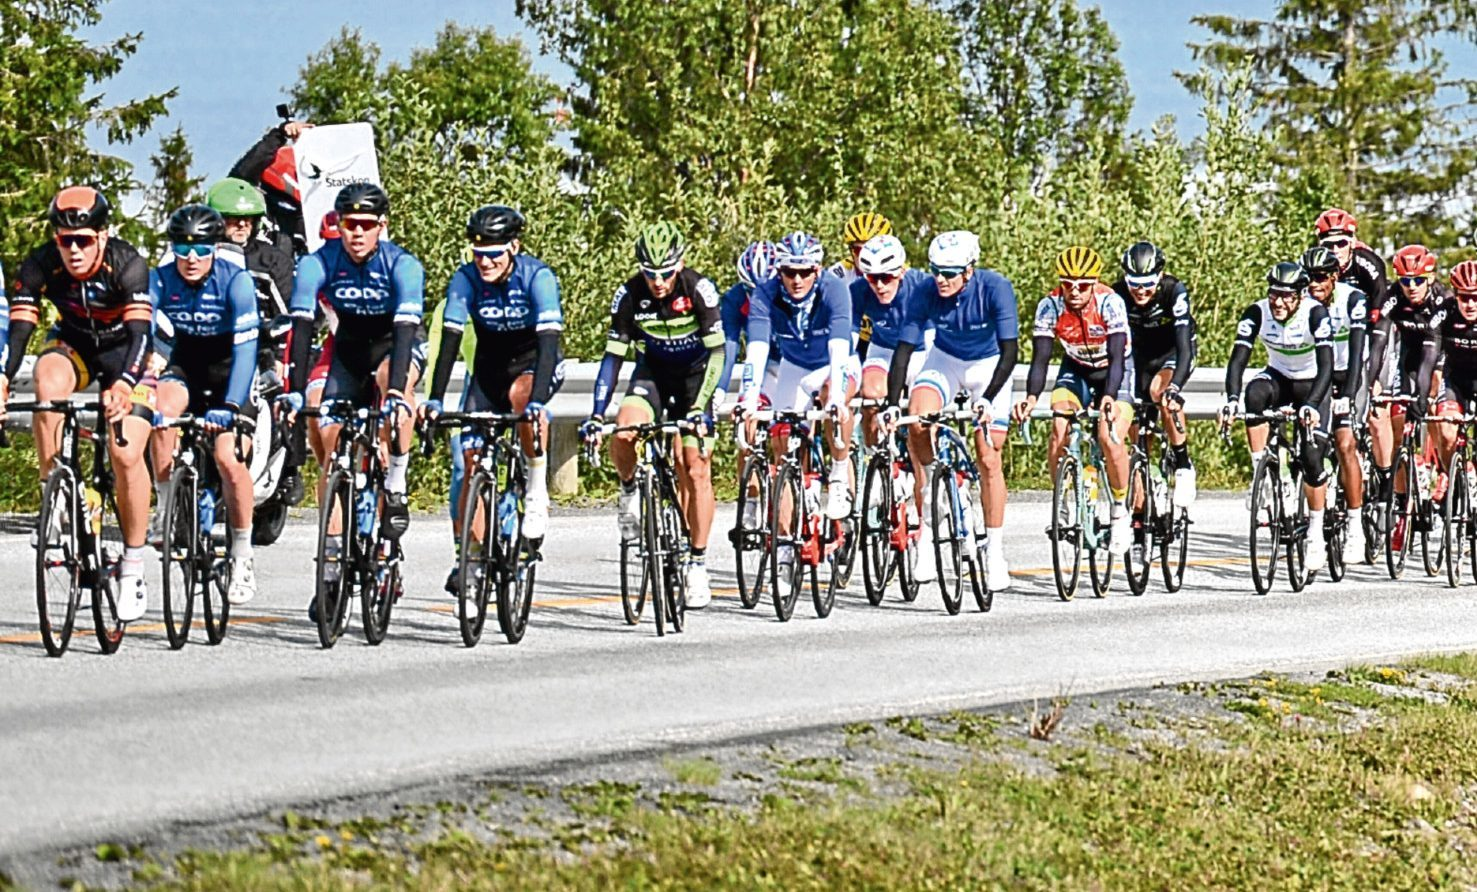 Club cyclists take part in a road race.